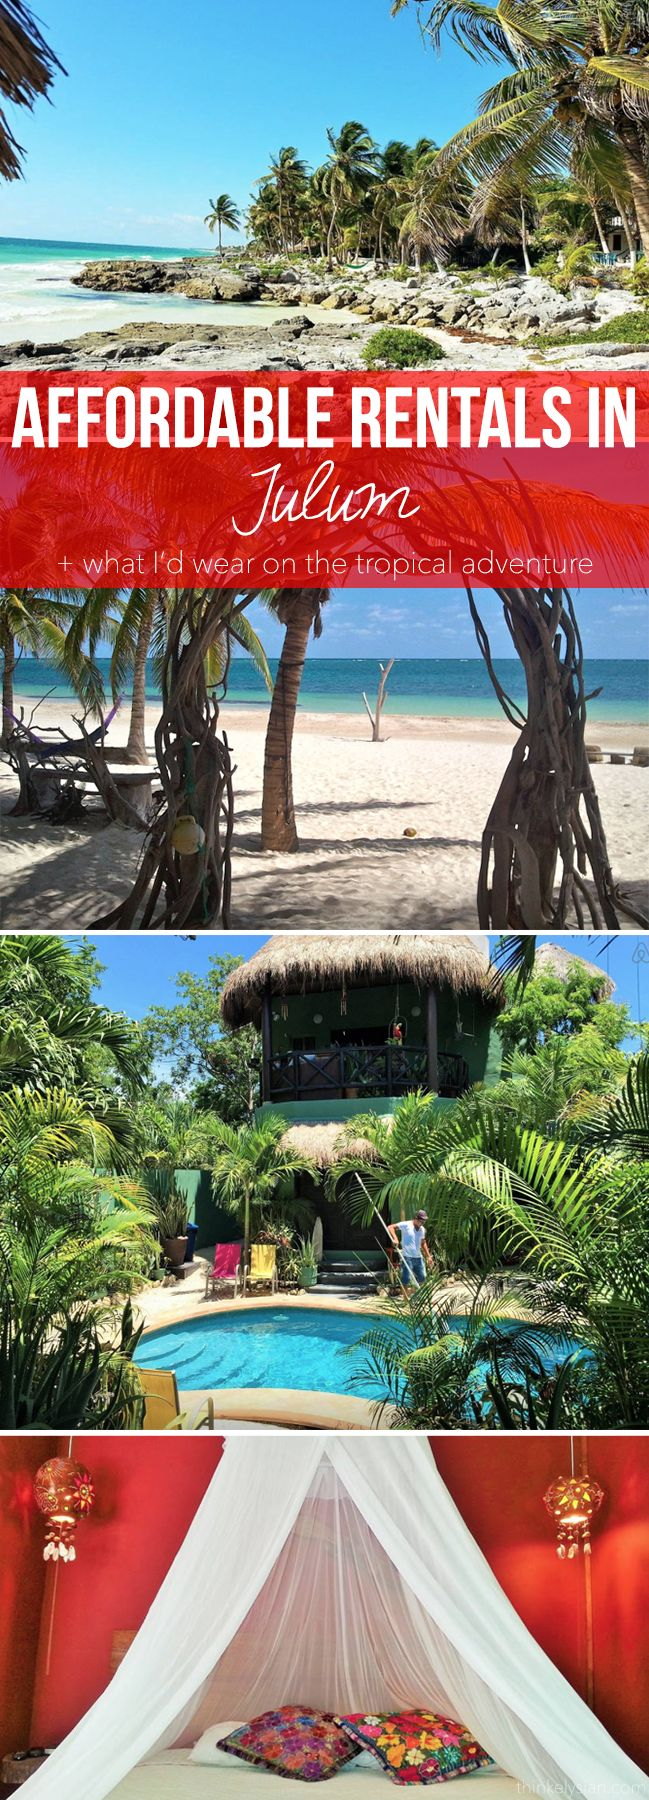 Wanderlust Wednesday - Affordable rentals in Tulum, Mexico + What I'd wear on the tropical adventure // www.thinkelysian.com